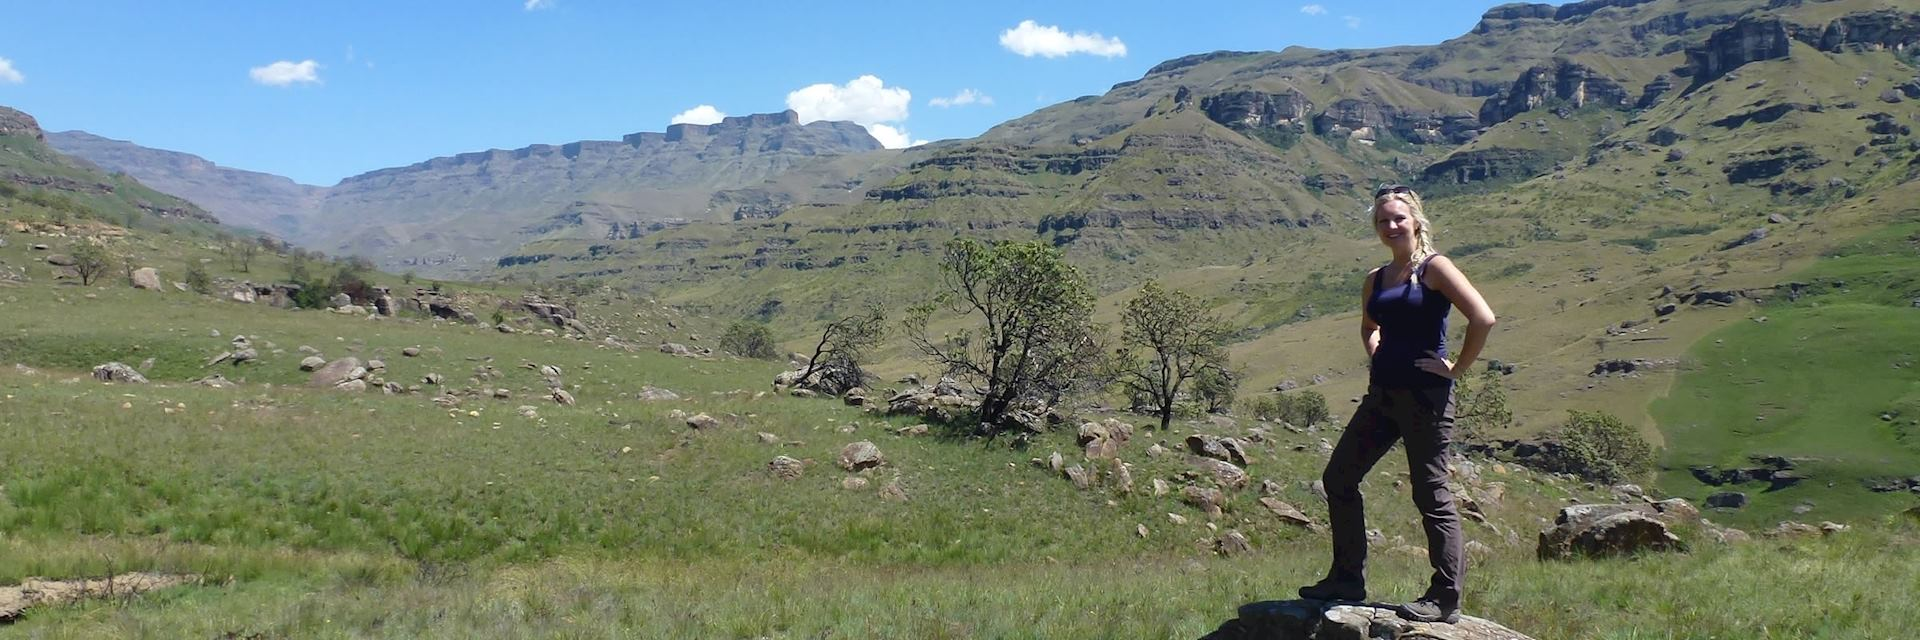 Anna hiking in the Drakensberg Mountains, South Africa